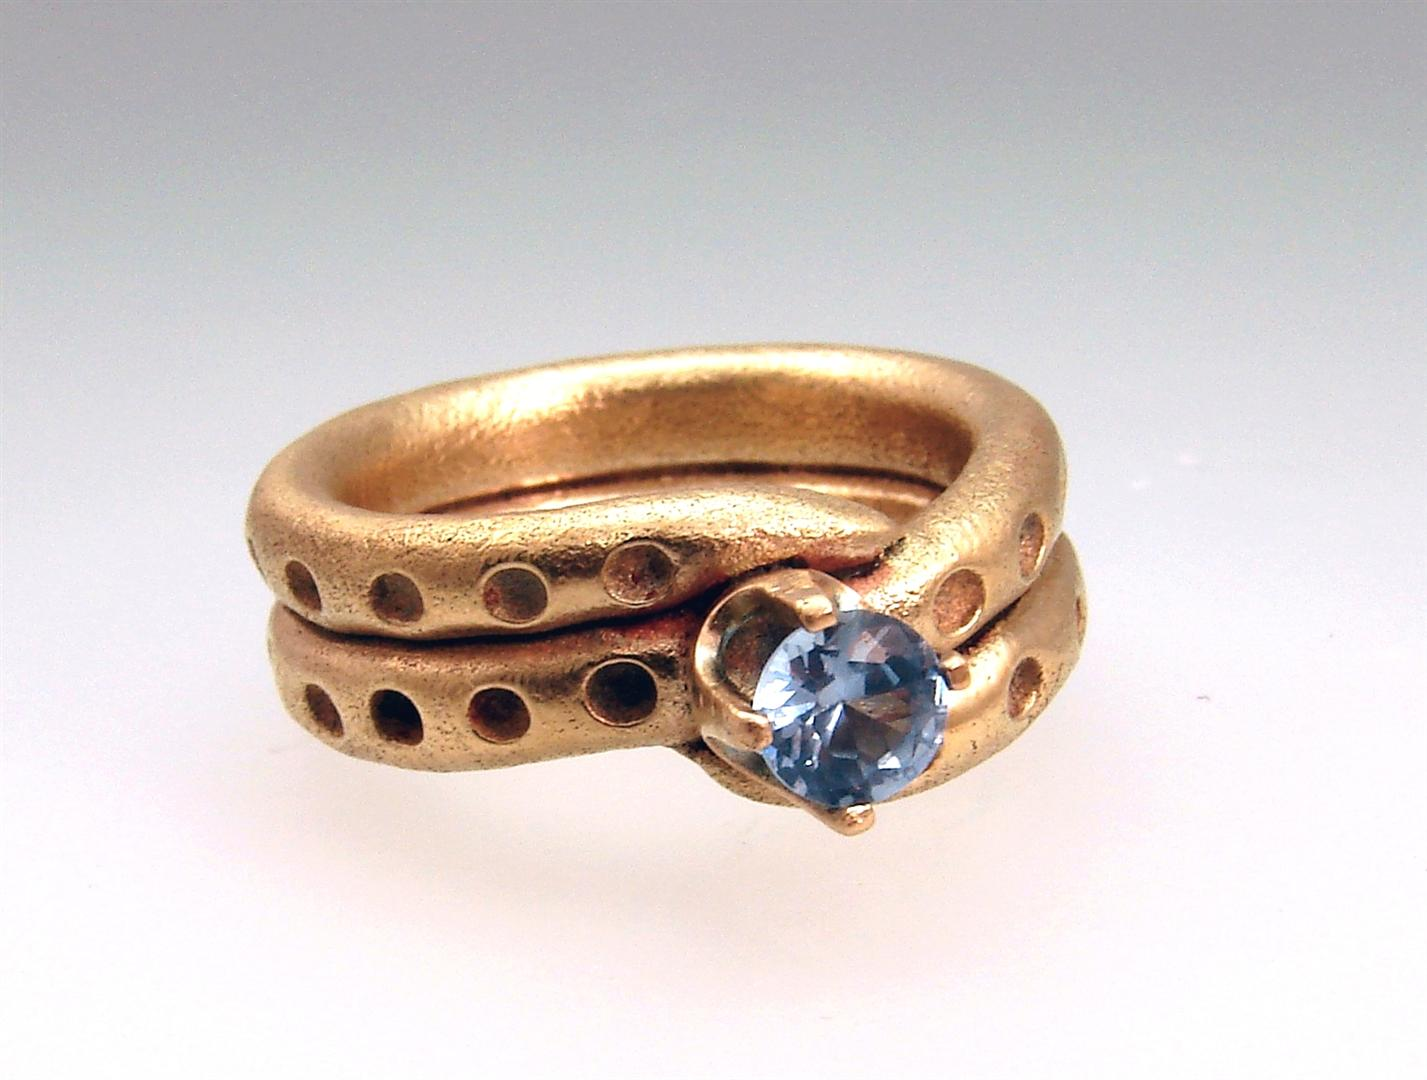 nodule designs rings azurite bronze maa raw anne ring